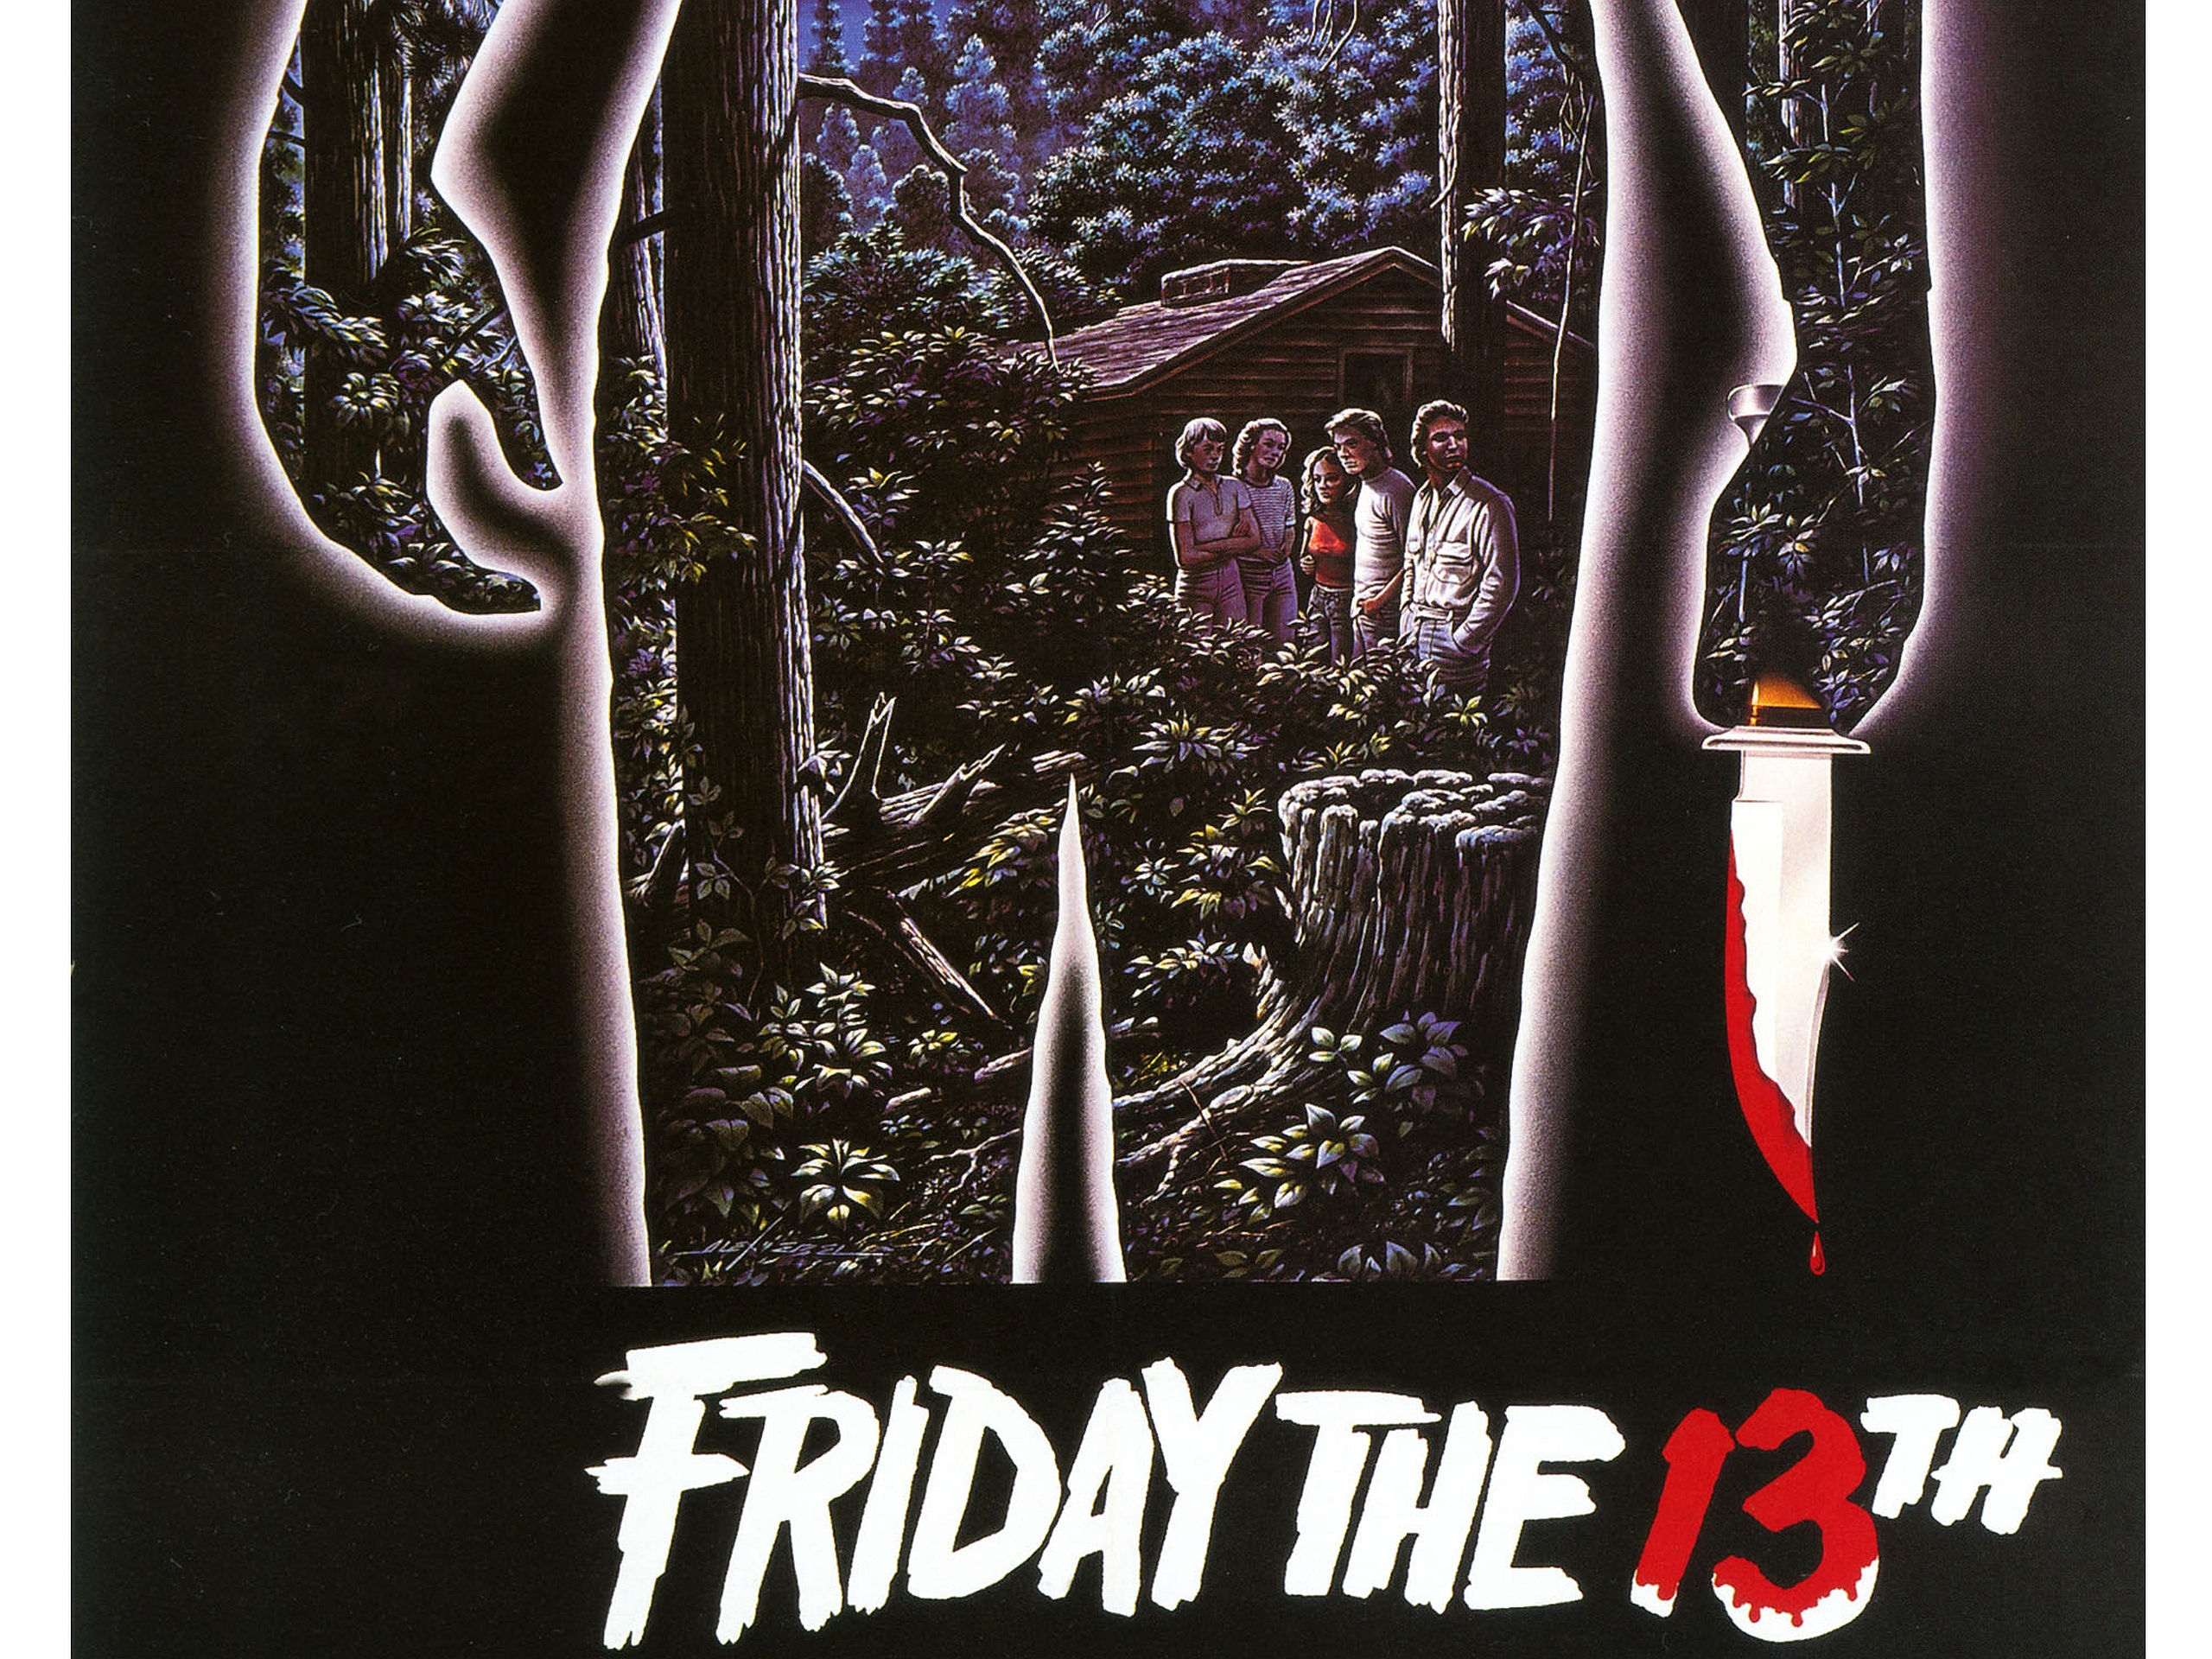 Friday the 13th 1980 computer wallpapers desktop - Friday the thirteenth wallpaper ...